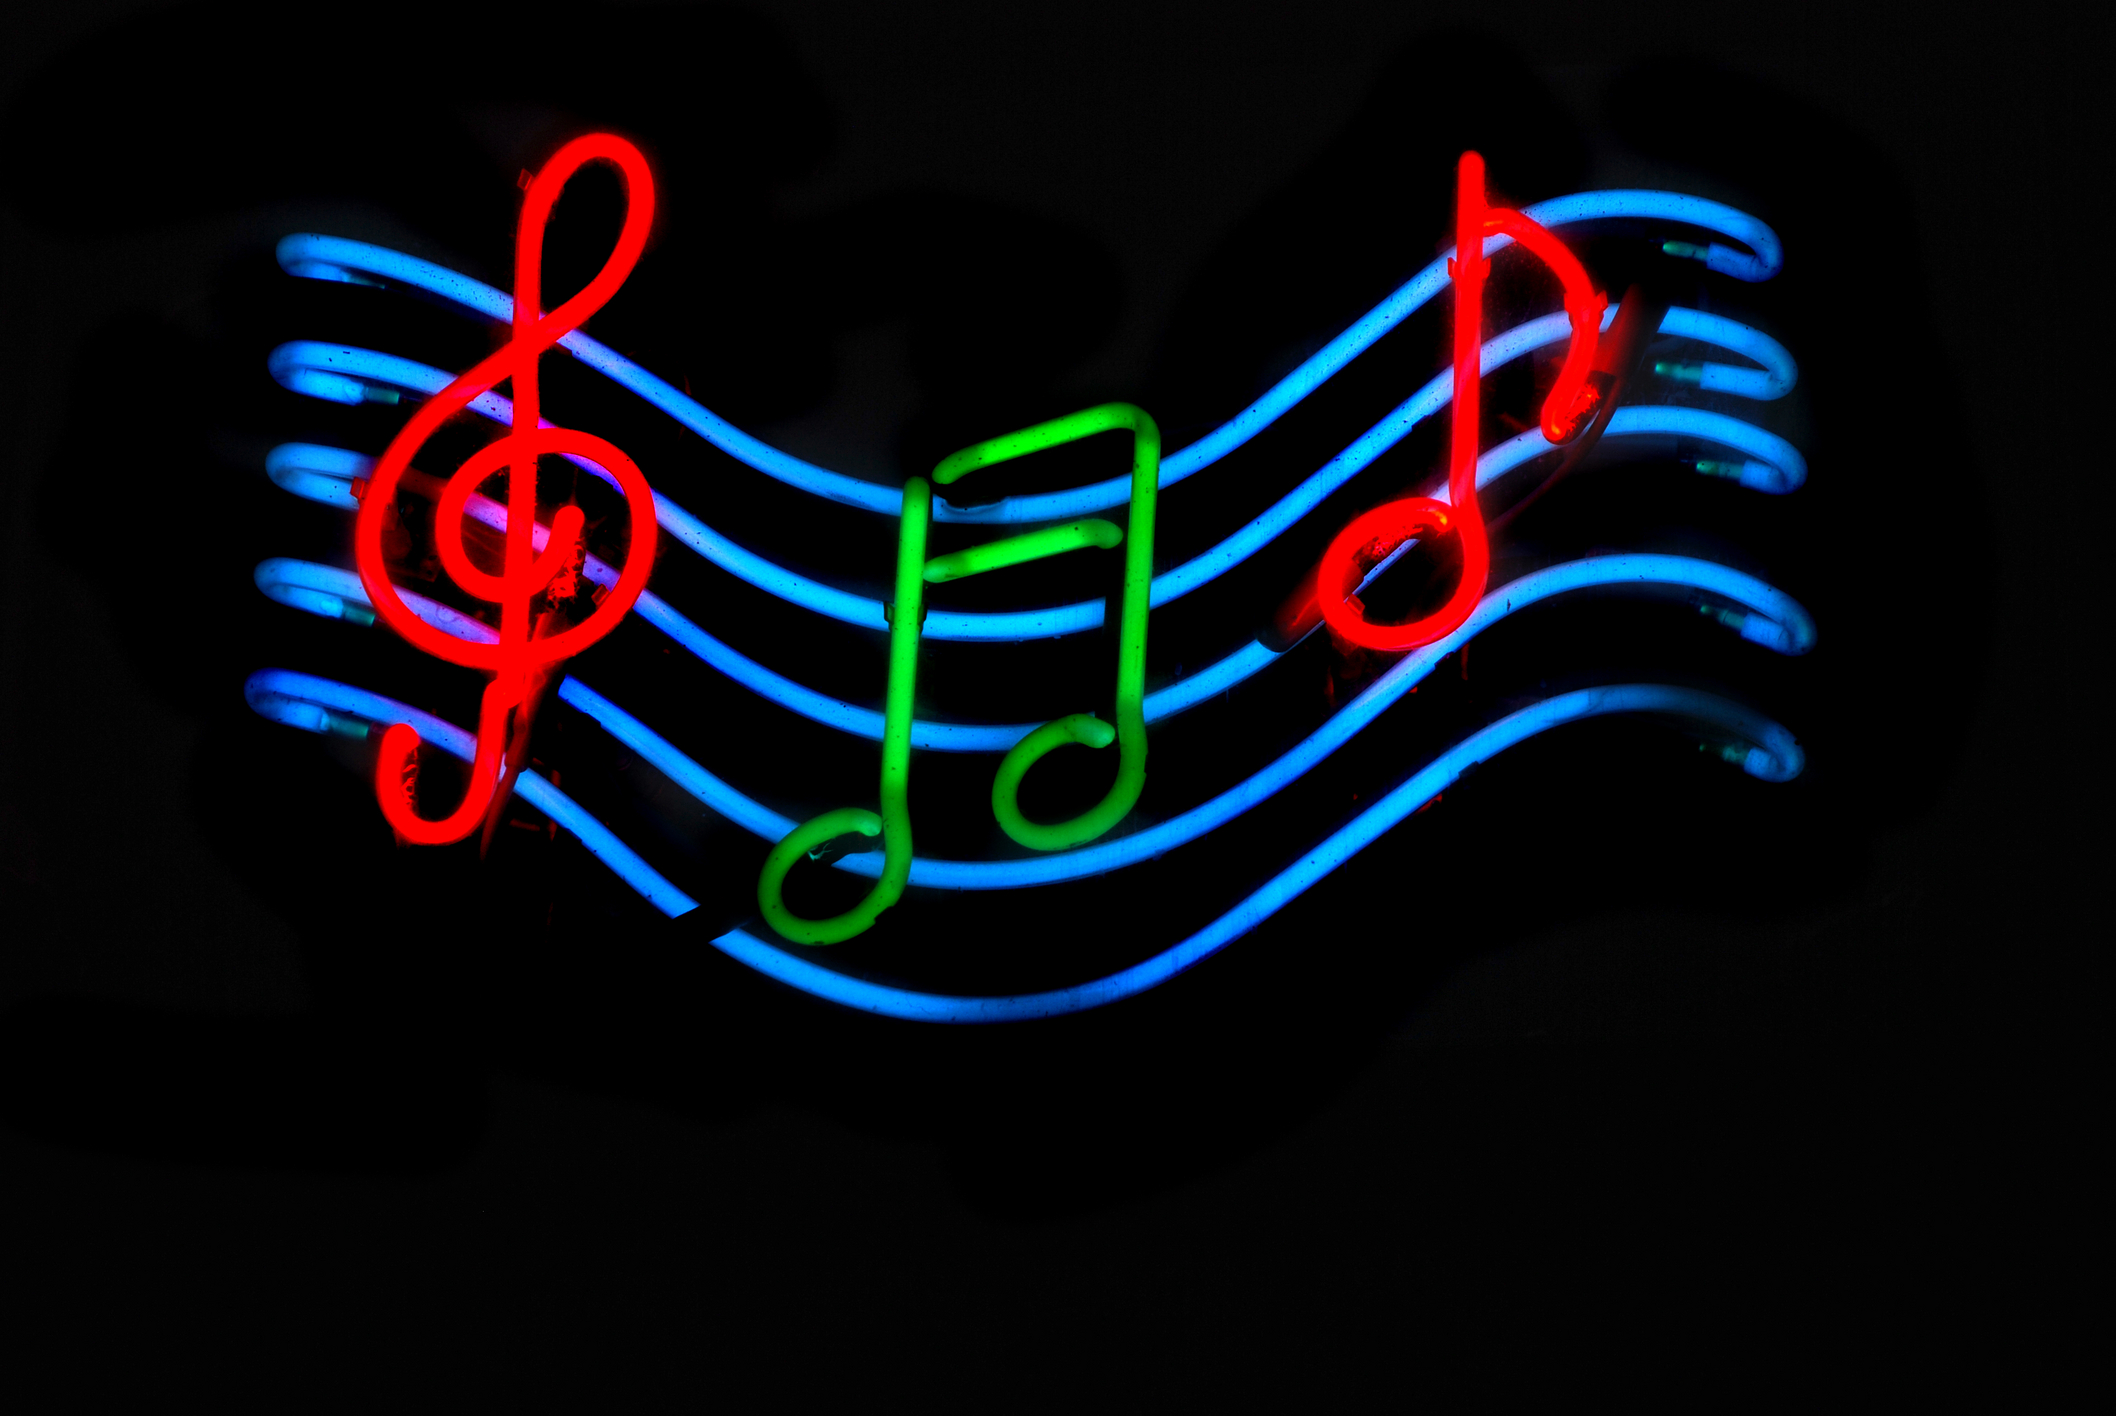 Must see Wallpaper Blue Music - colorful-music-notes-wallpaper-30  You Should Have_75904.jpg